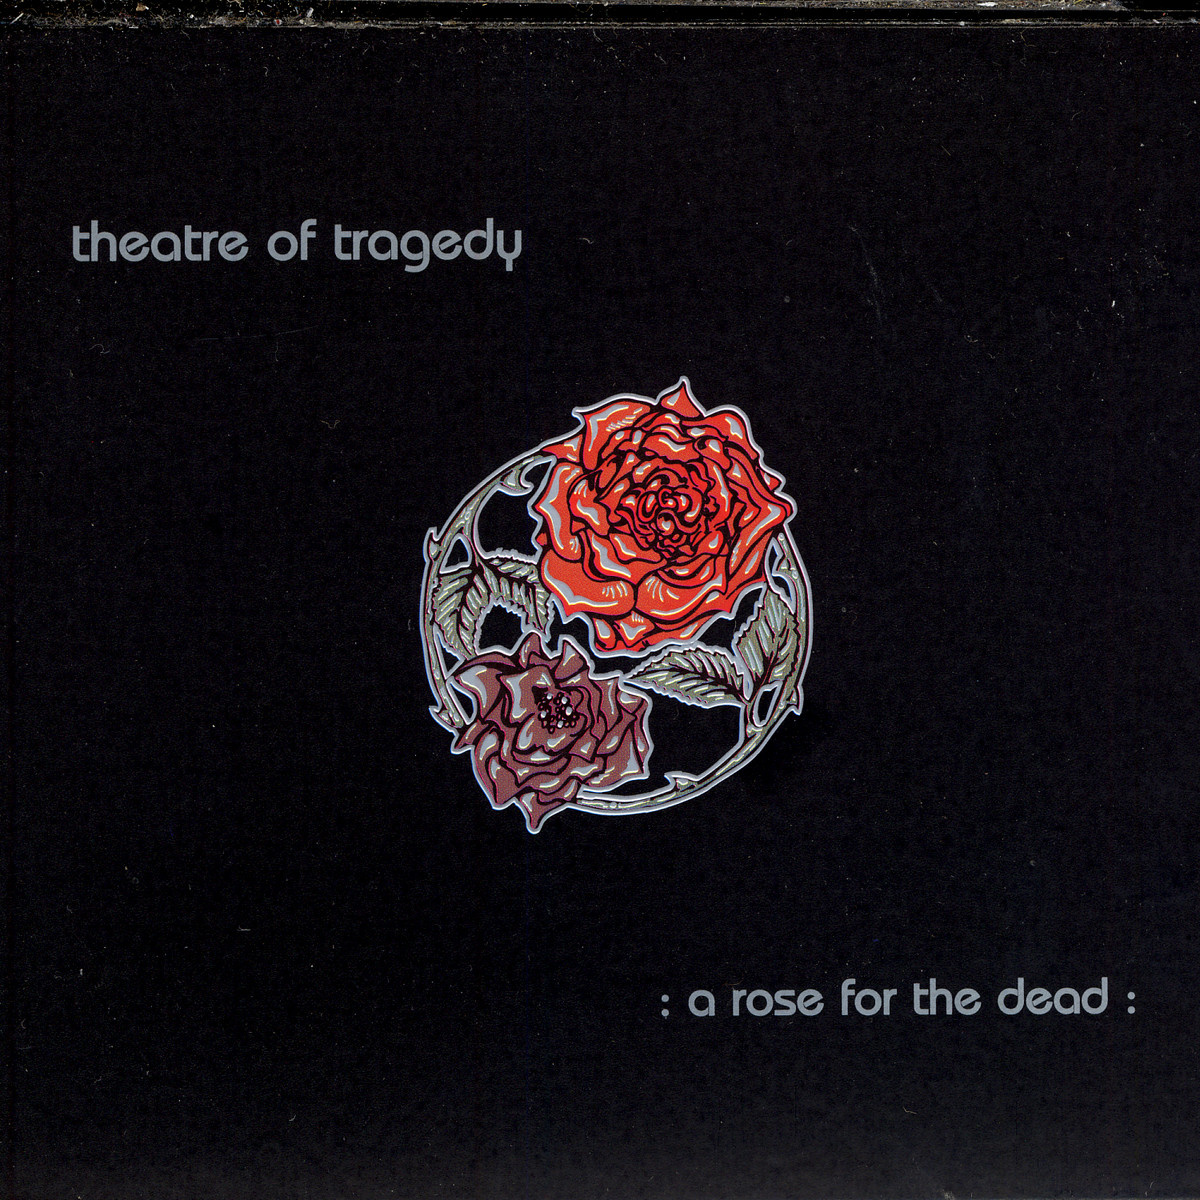 A Rose for the Dead – Theatre of Tragedy 选自《A Rose for the Dead》专辑